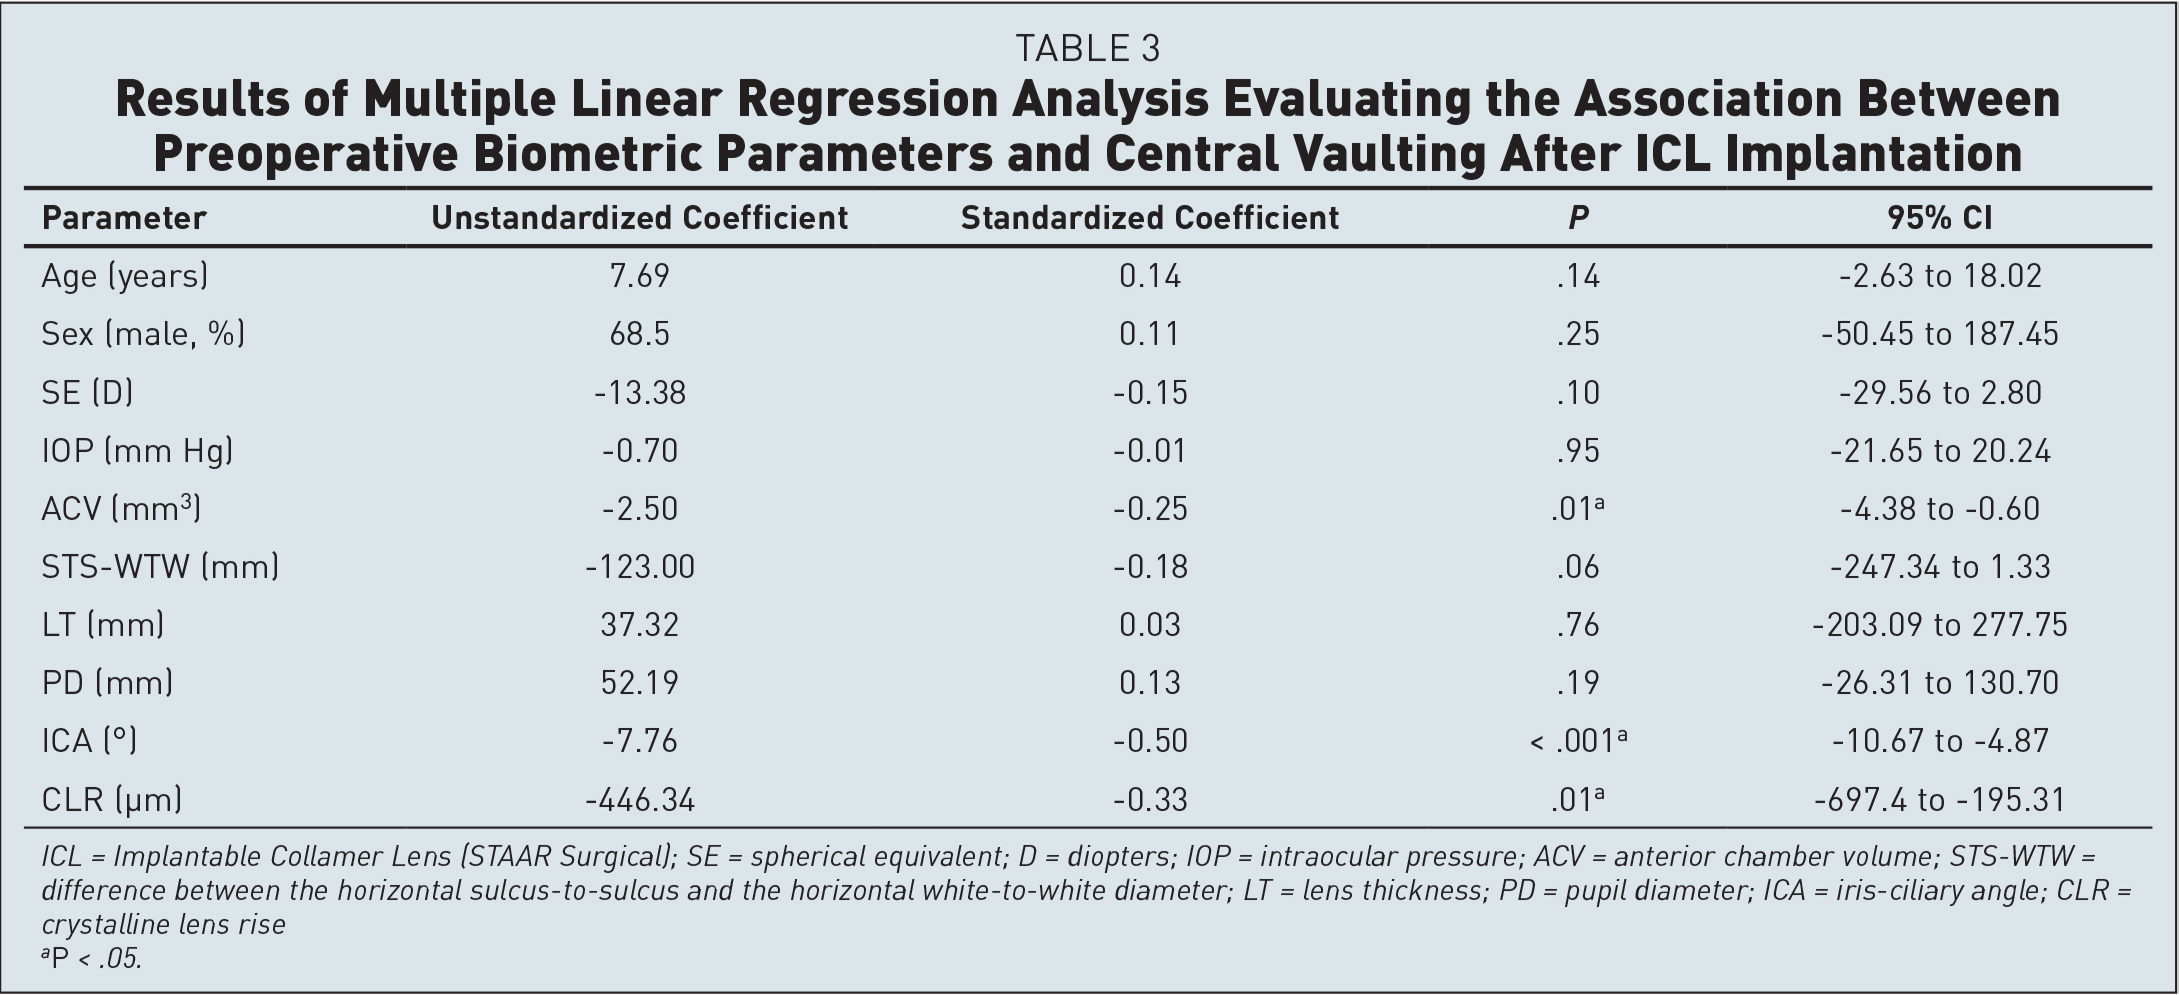 Results of Multiple Linear Regression Analysis Evaluating the Association Between Preoperative Biometric Parameters and Central Vaulting After ICL Implantation